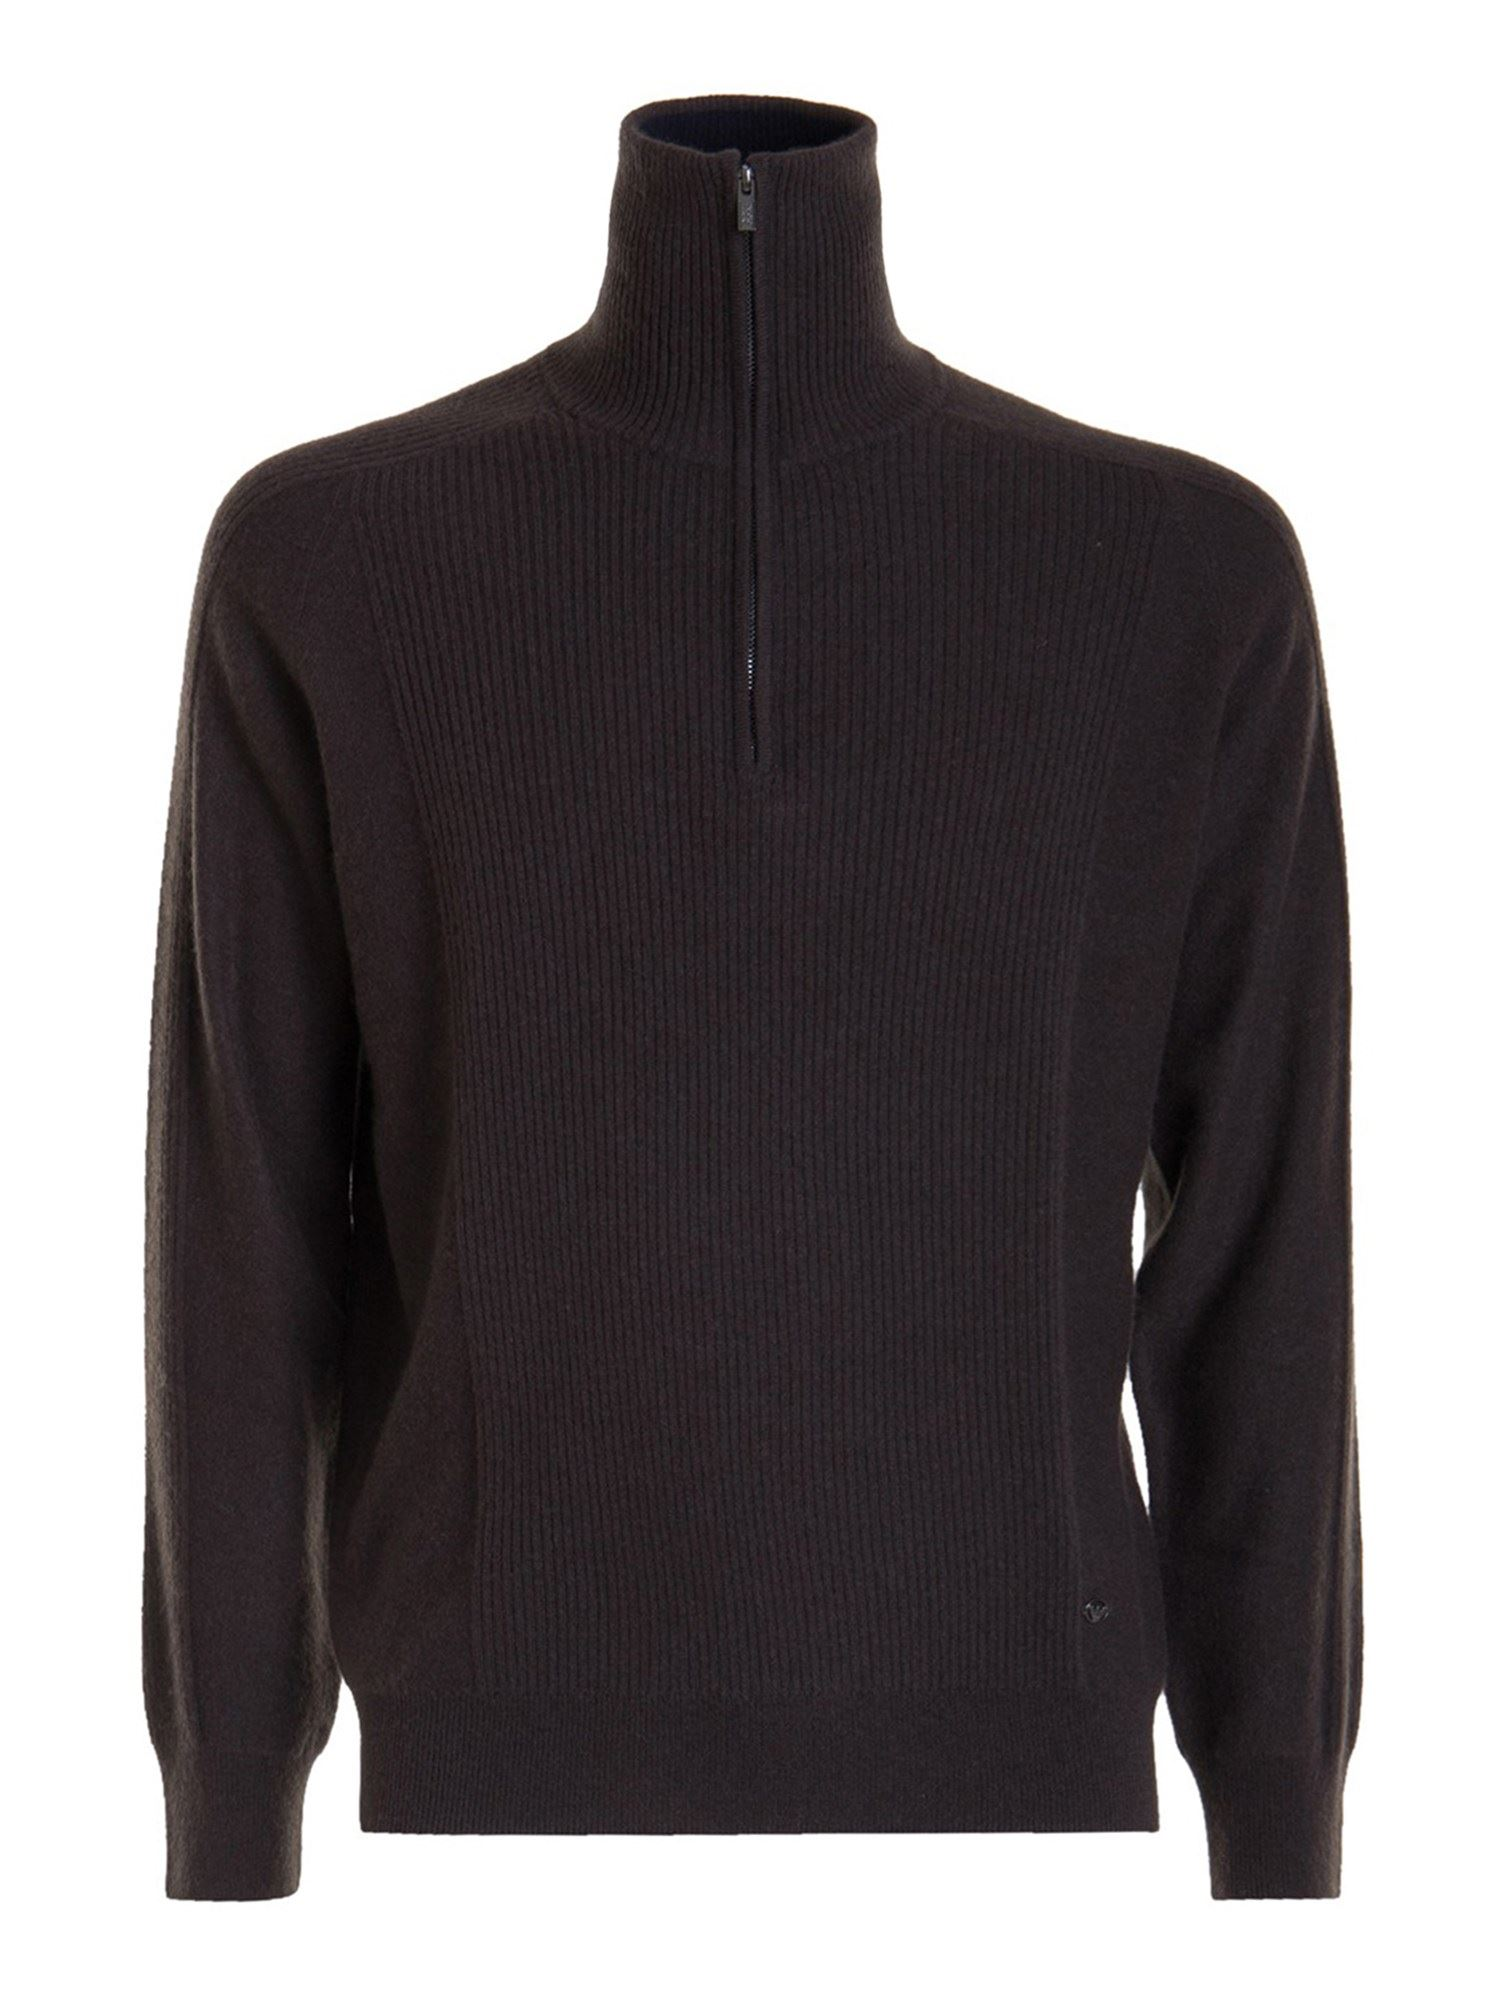 Emporio Armani WOOL-CASHMERE BLEND TURTLENECK IN BROWN